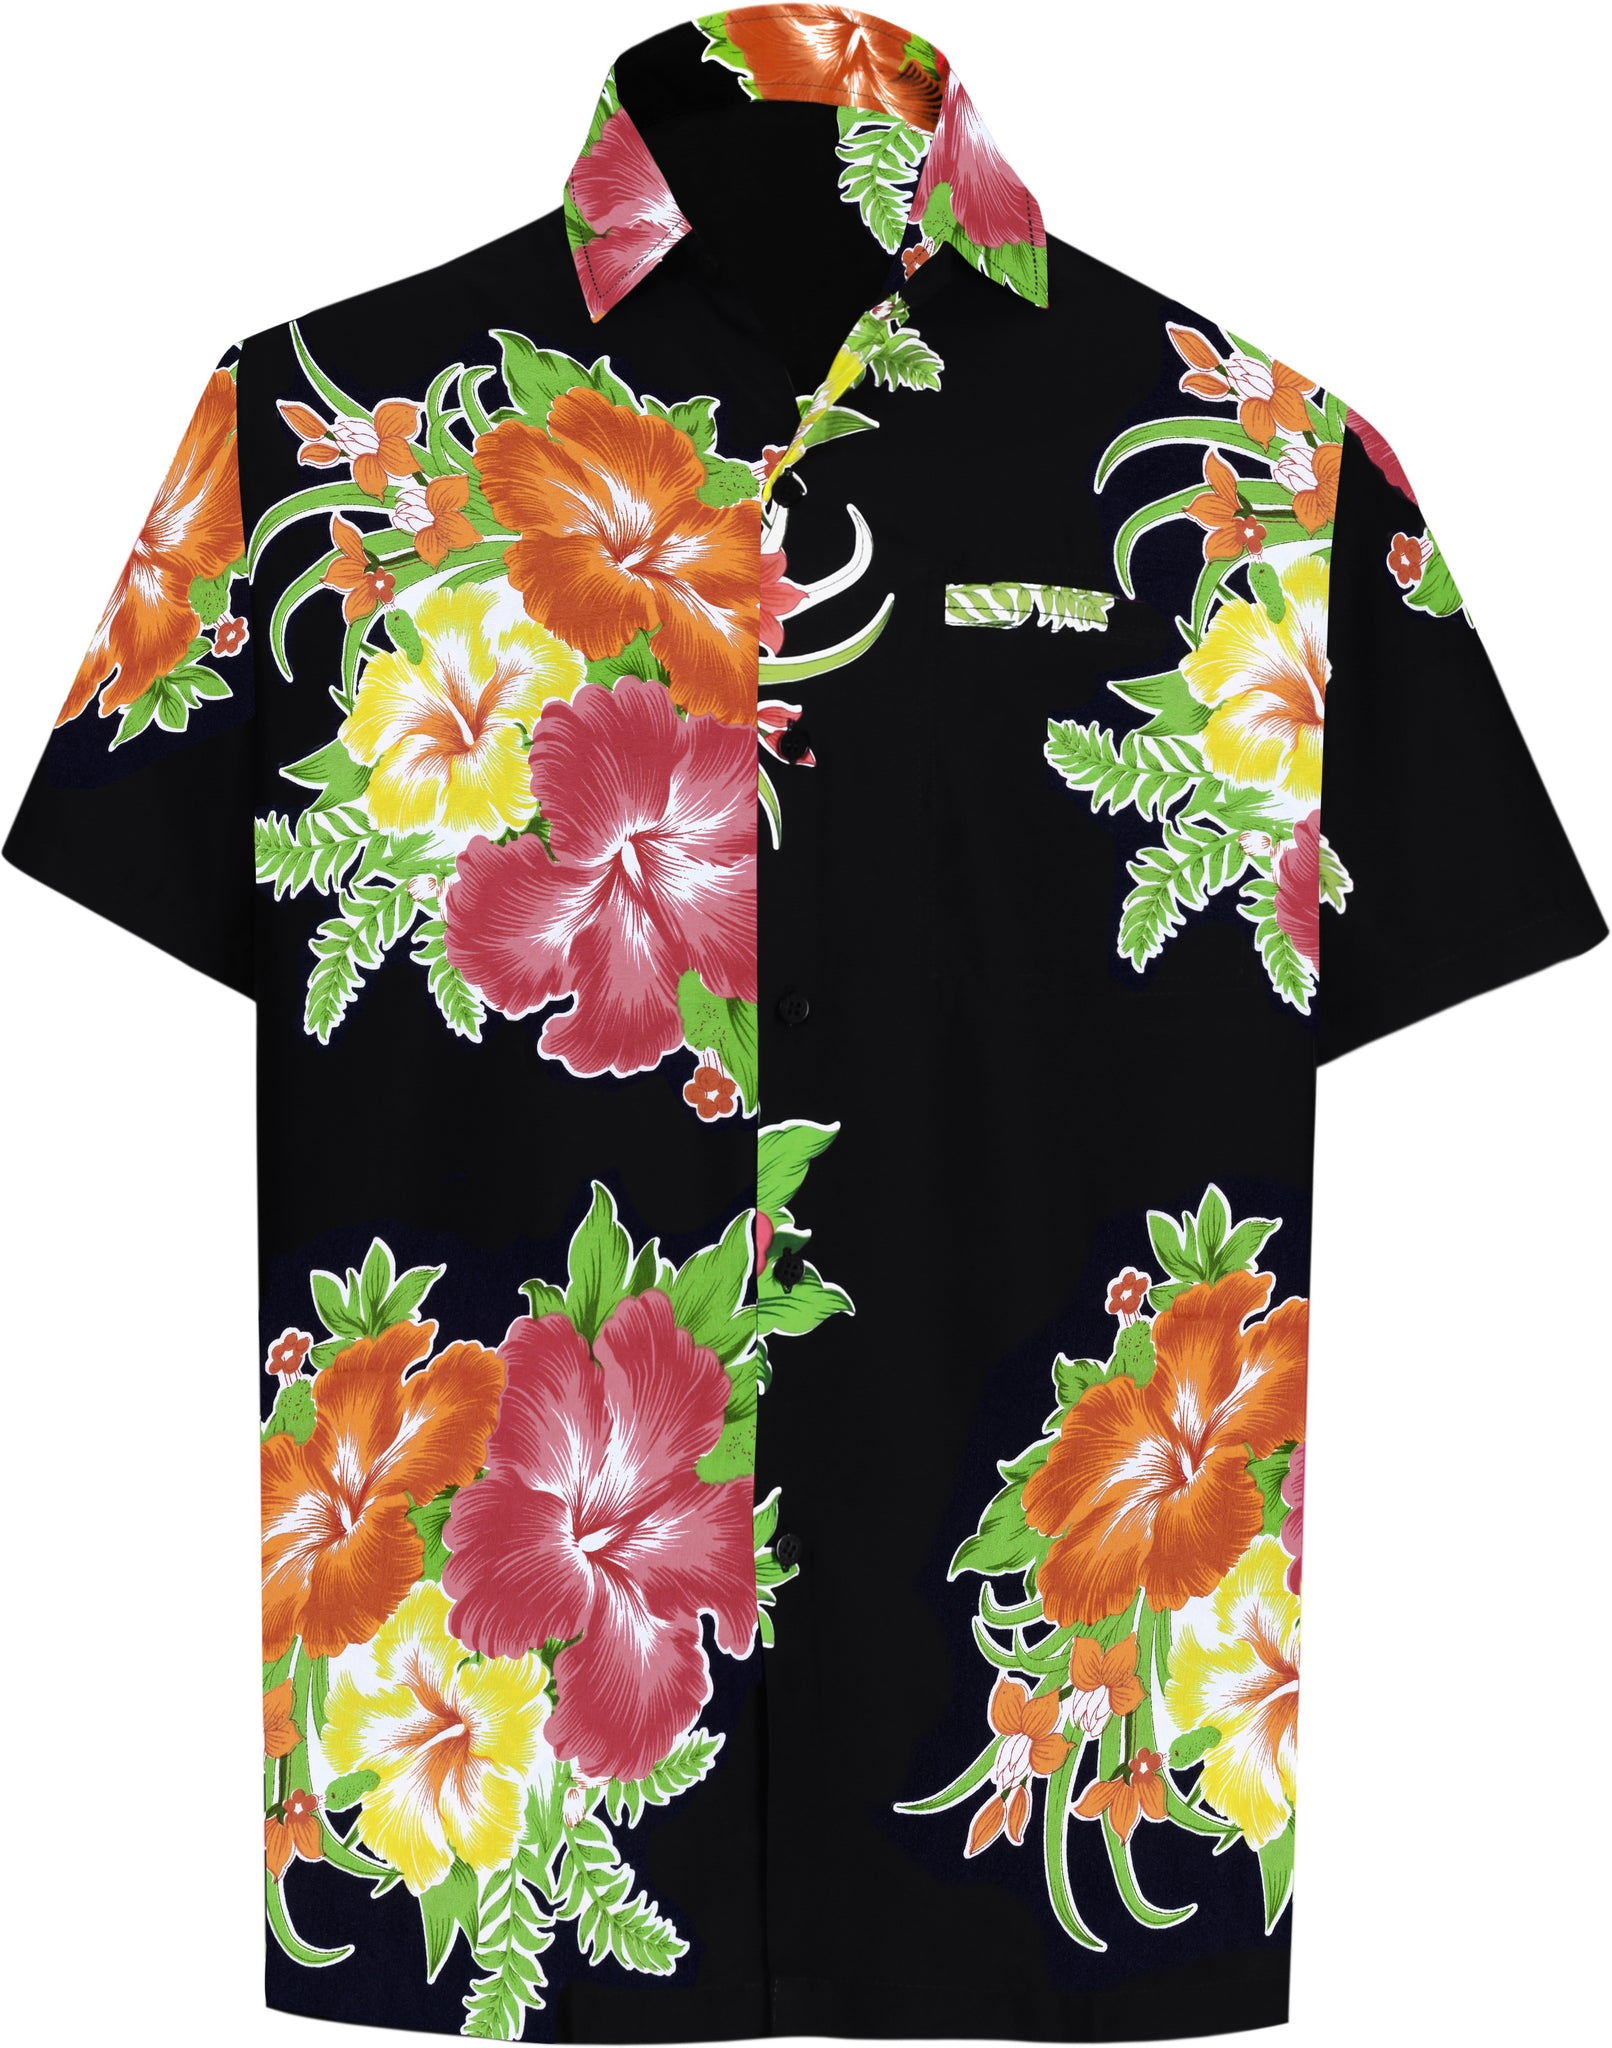 EELa Mens Short Sleeve Printed Floral Flower Casual Button Down Shirt Summer Hawaiian